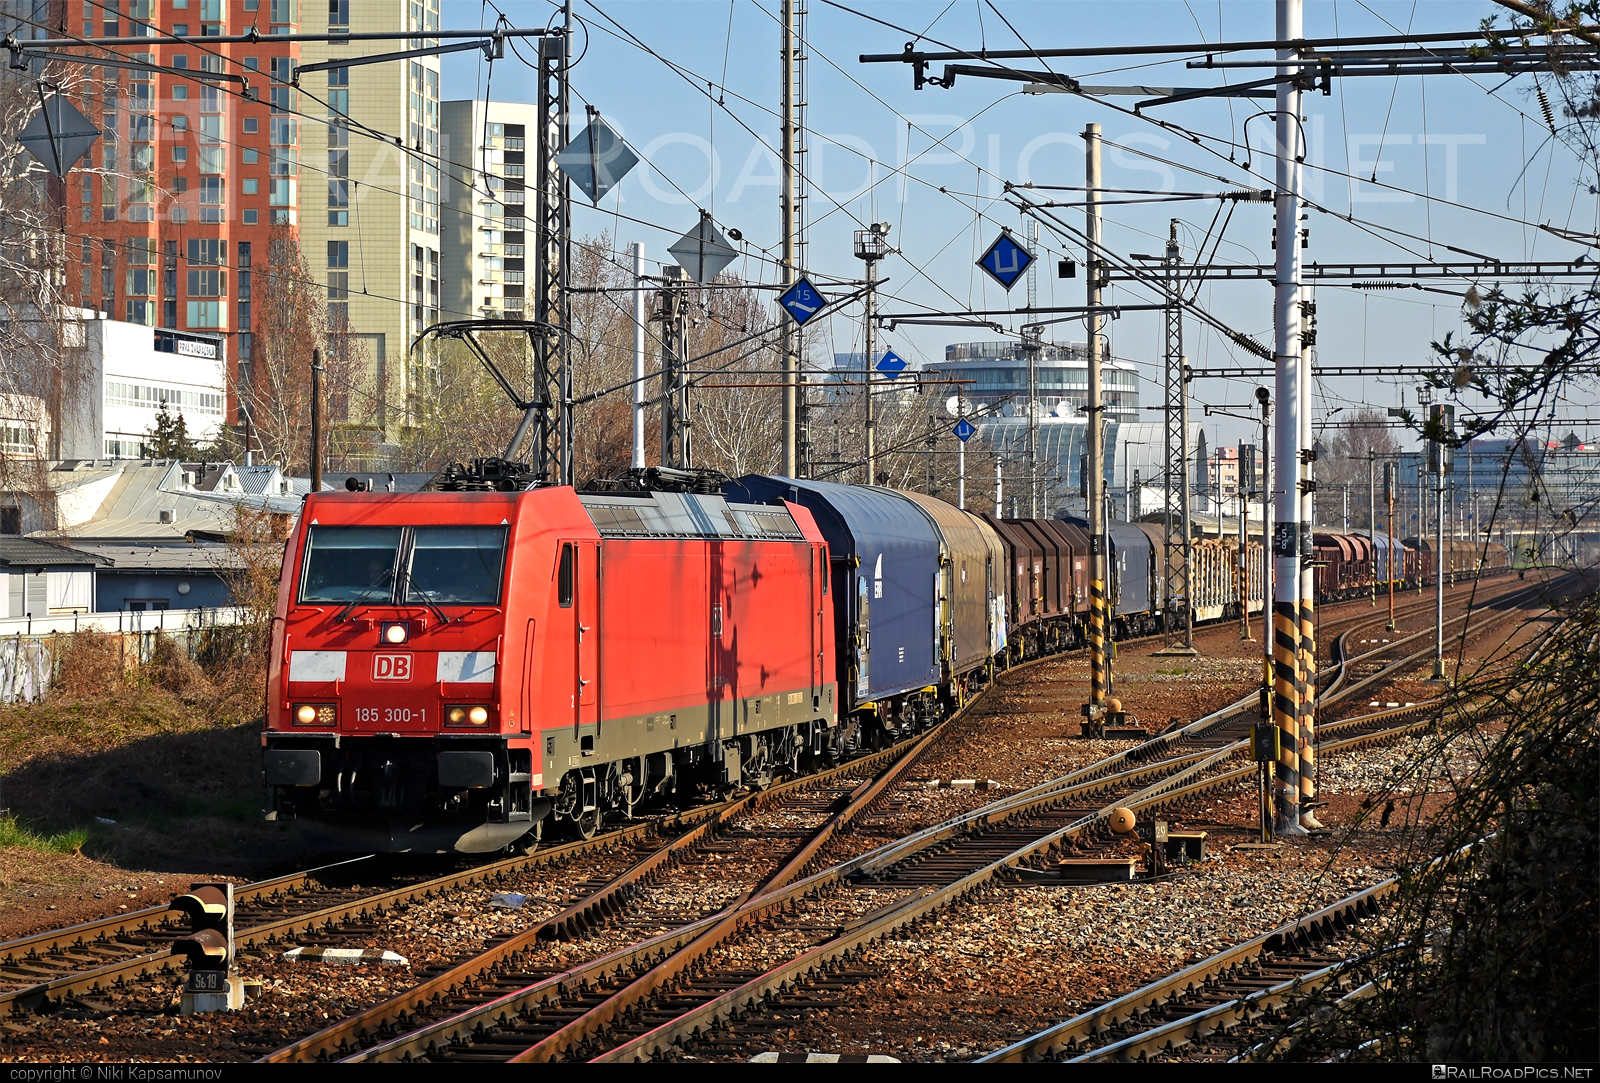 Bombardier TRAXX F140 AC2 - 185 300-1 operated by DB Cargo AG #bombardier #bombardiertraxx #db #dbcargo #dbcargoag #deutschebahn #traxx #traxxf140 #traxxf140ac #traxxf140ac2